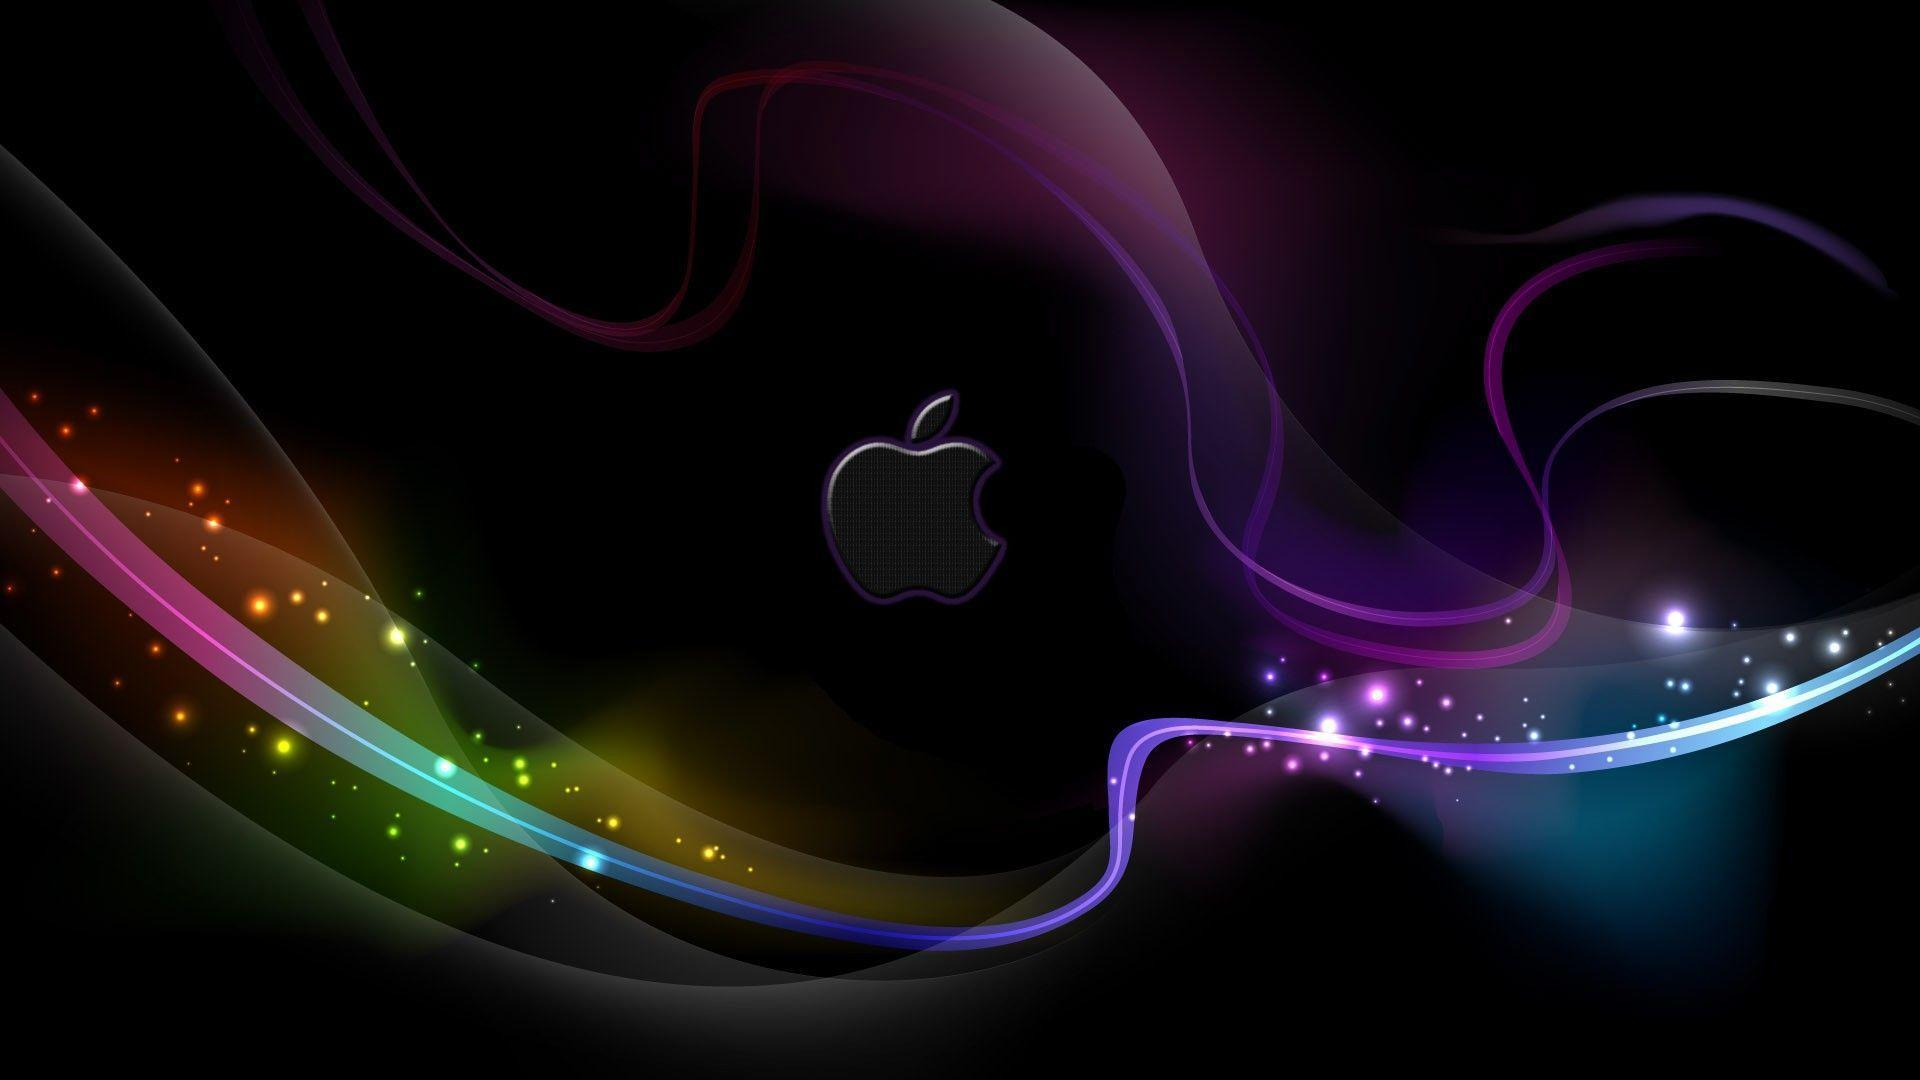 imac hd wallpapers wallpaper cave